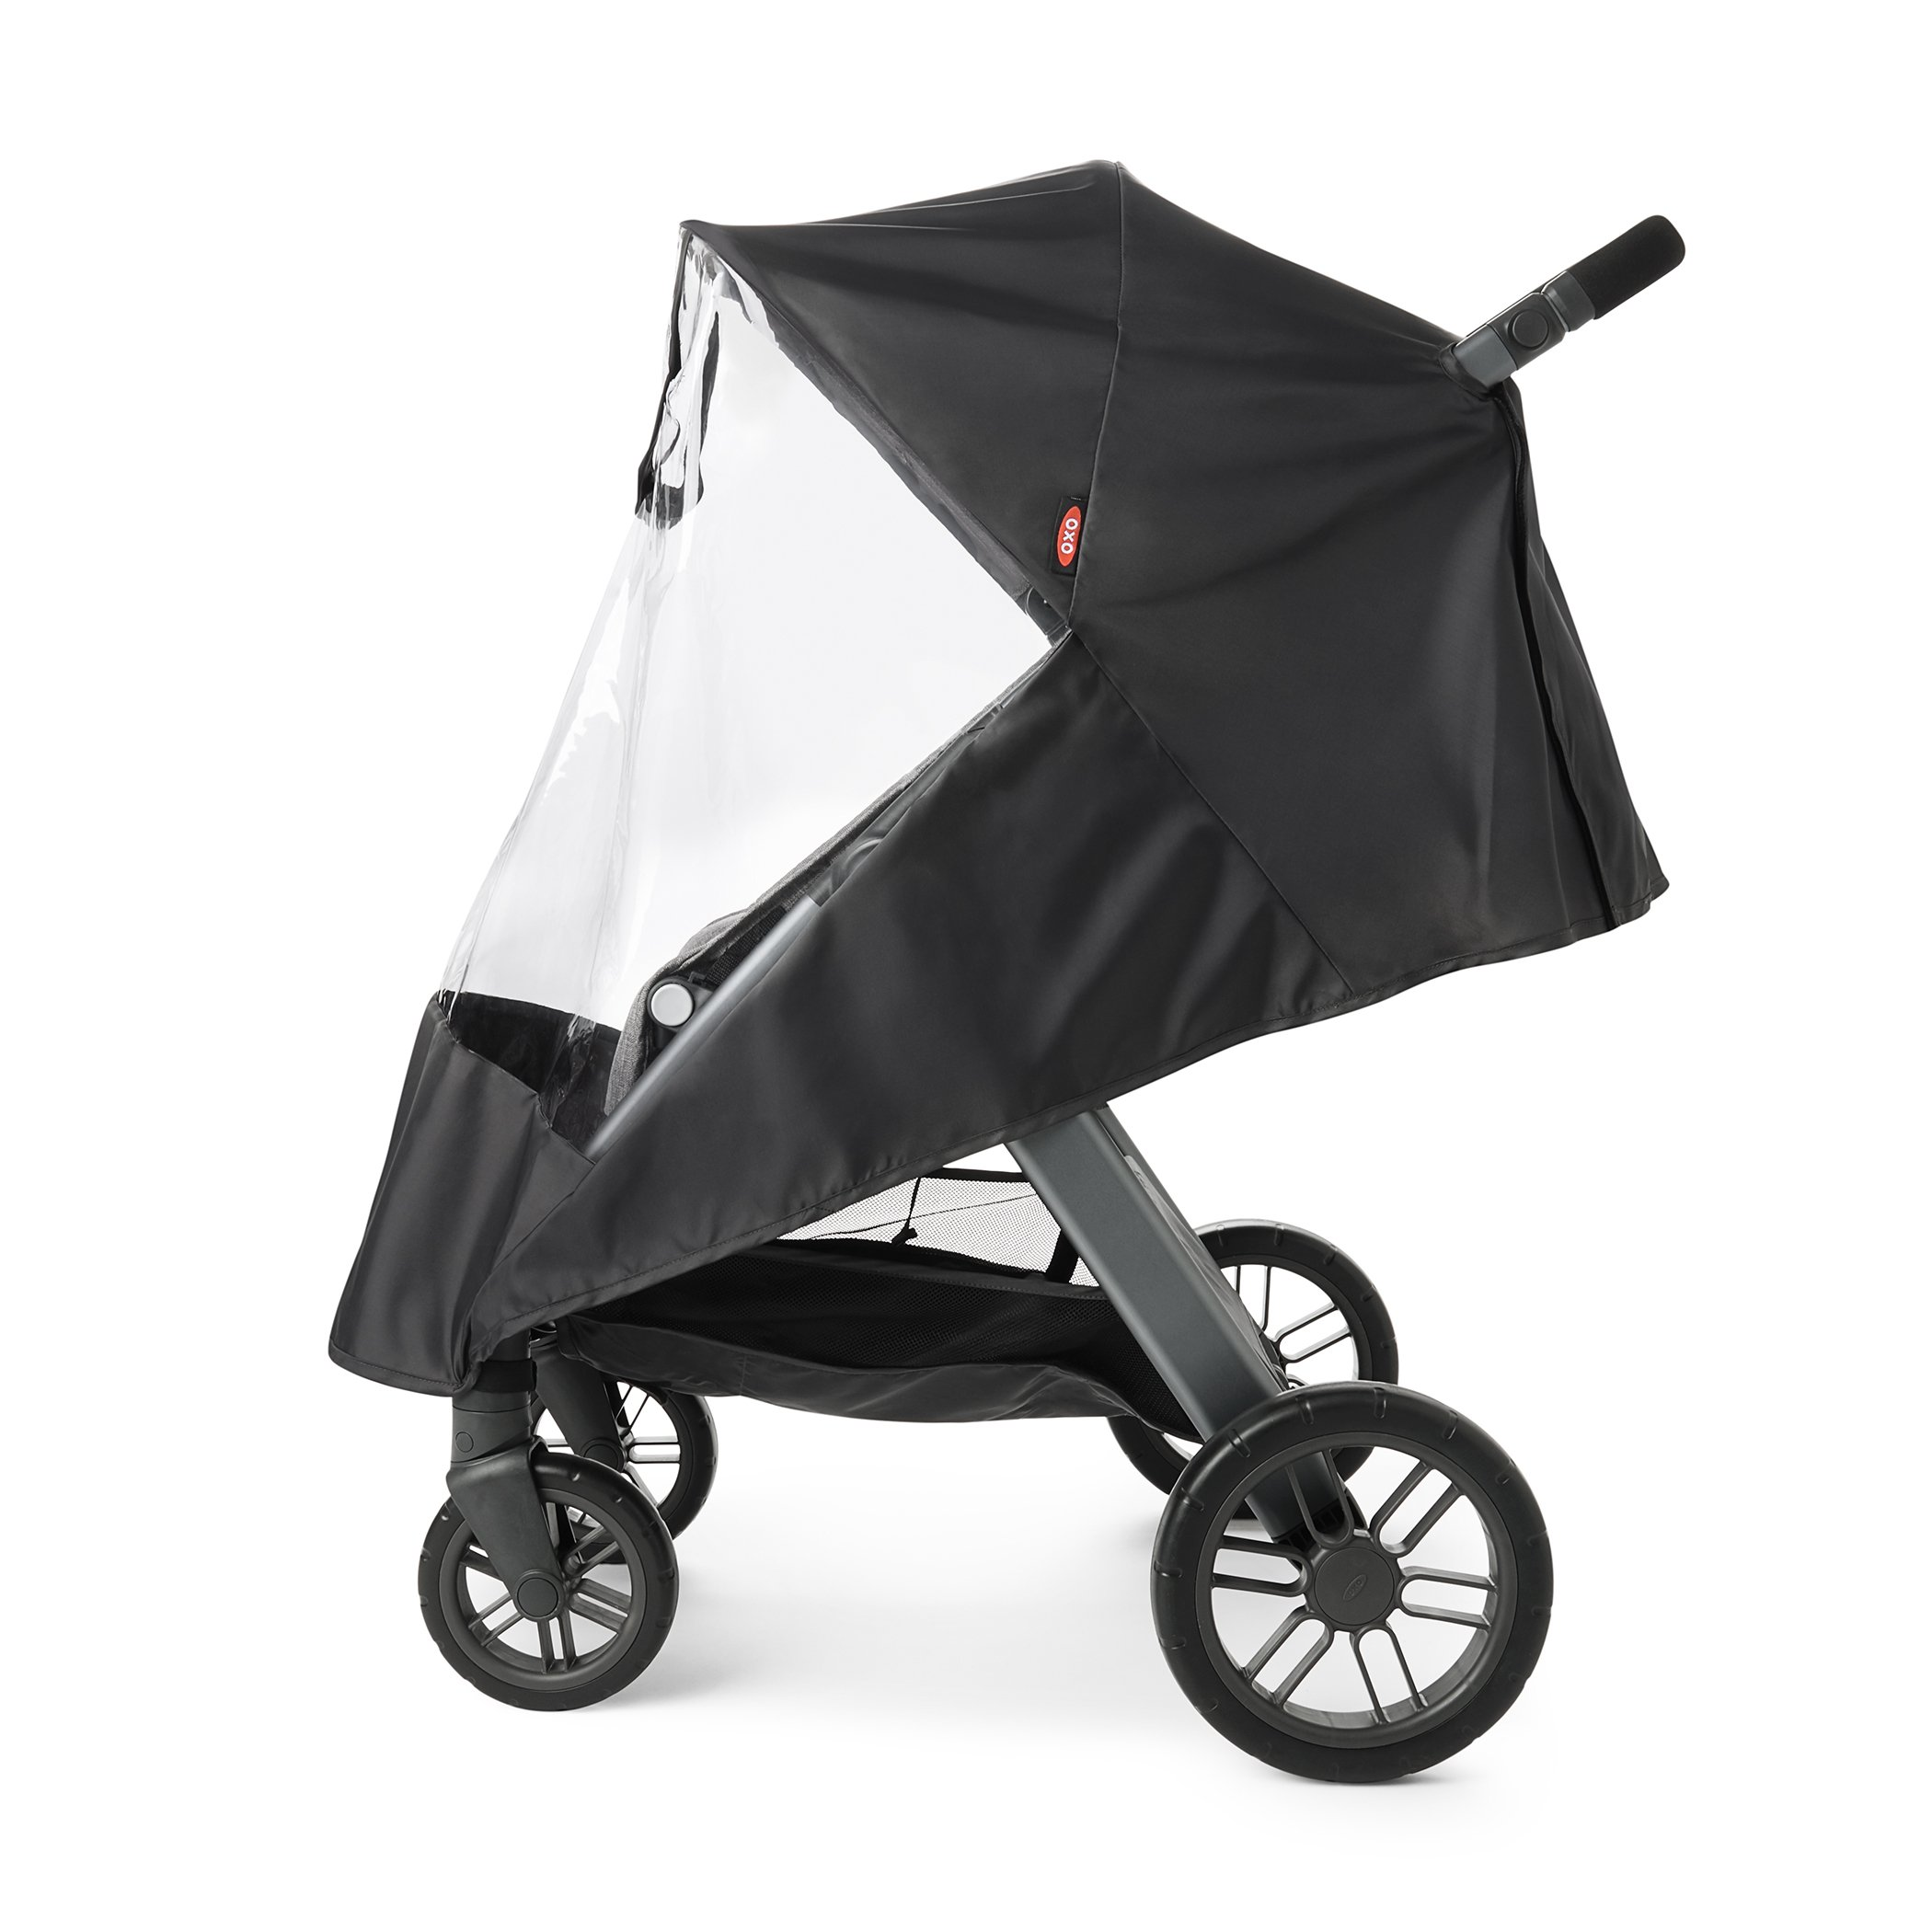 Amazon.com : OXO Tot Cubby Plus Stroller, Charcoal : Baby